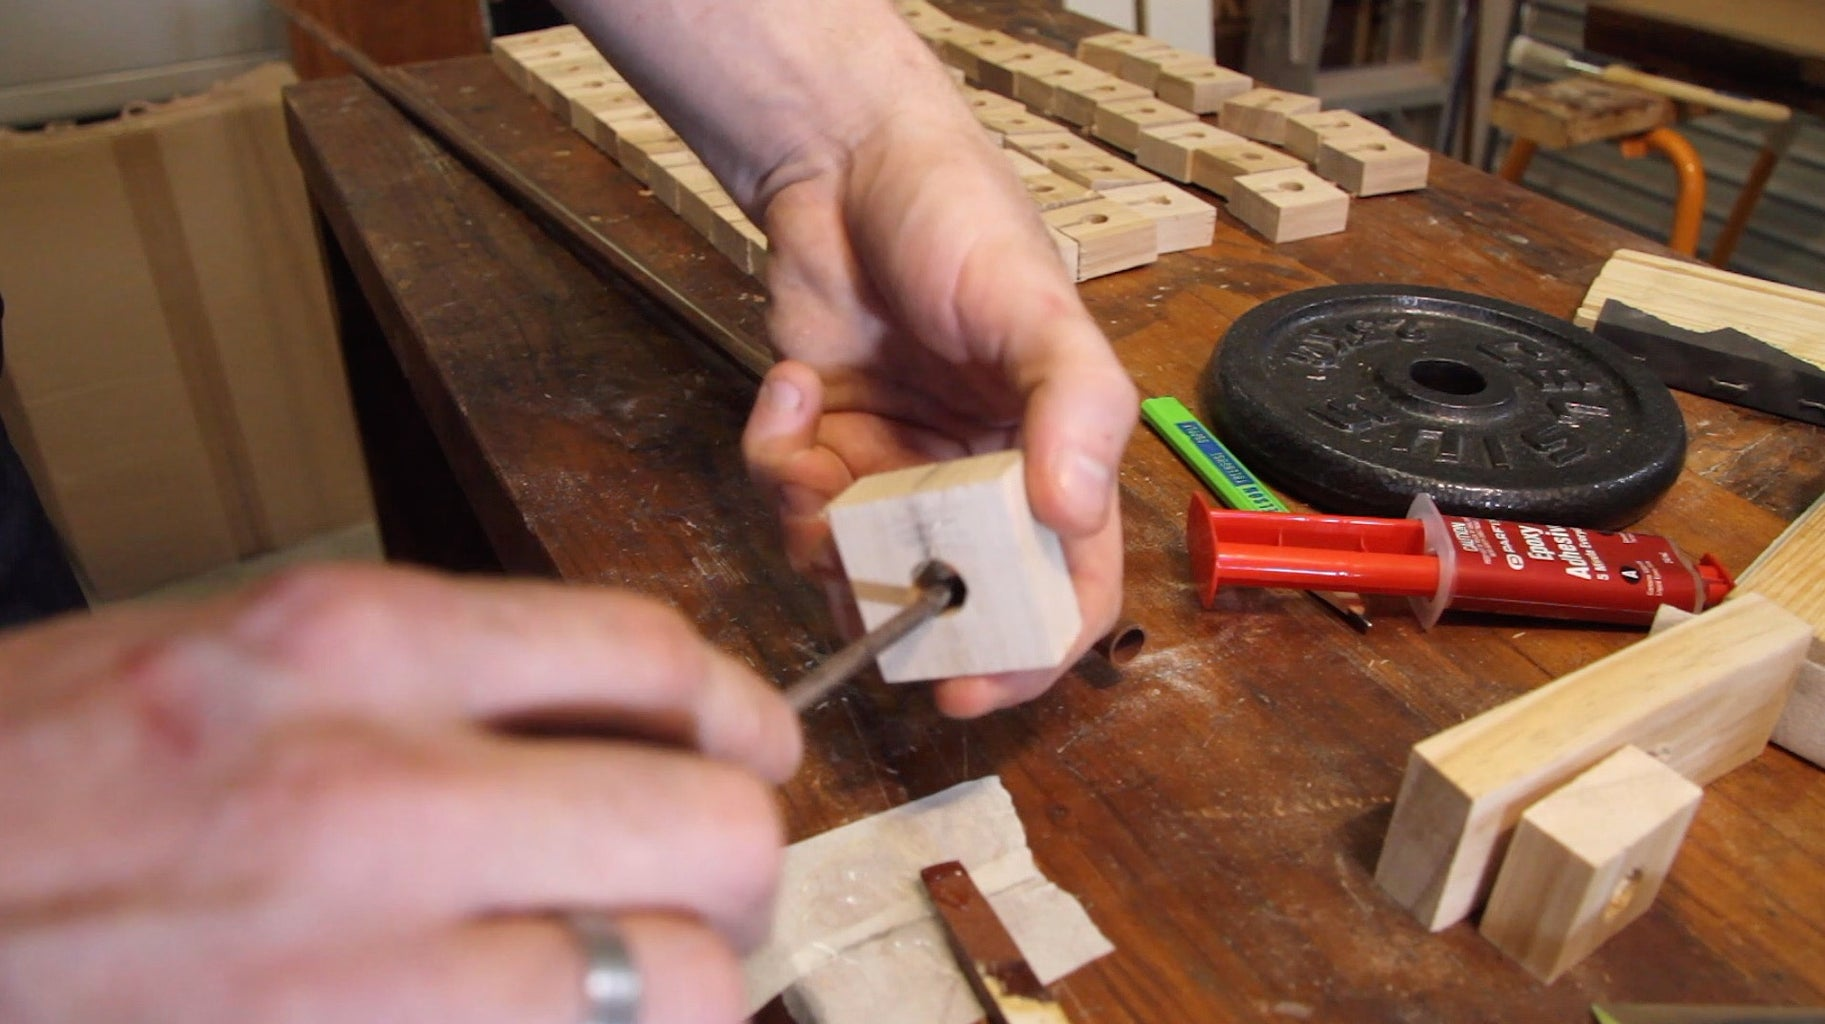 Slide Wood Squares Onto Copper Pipe to Make the Shaft